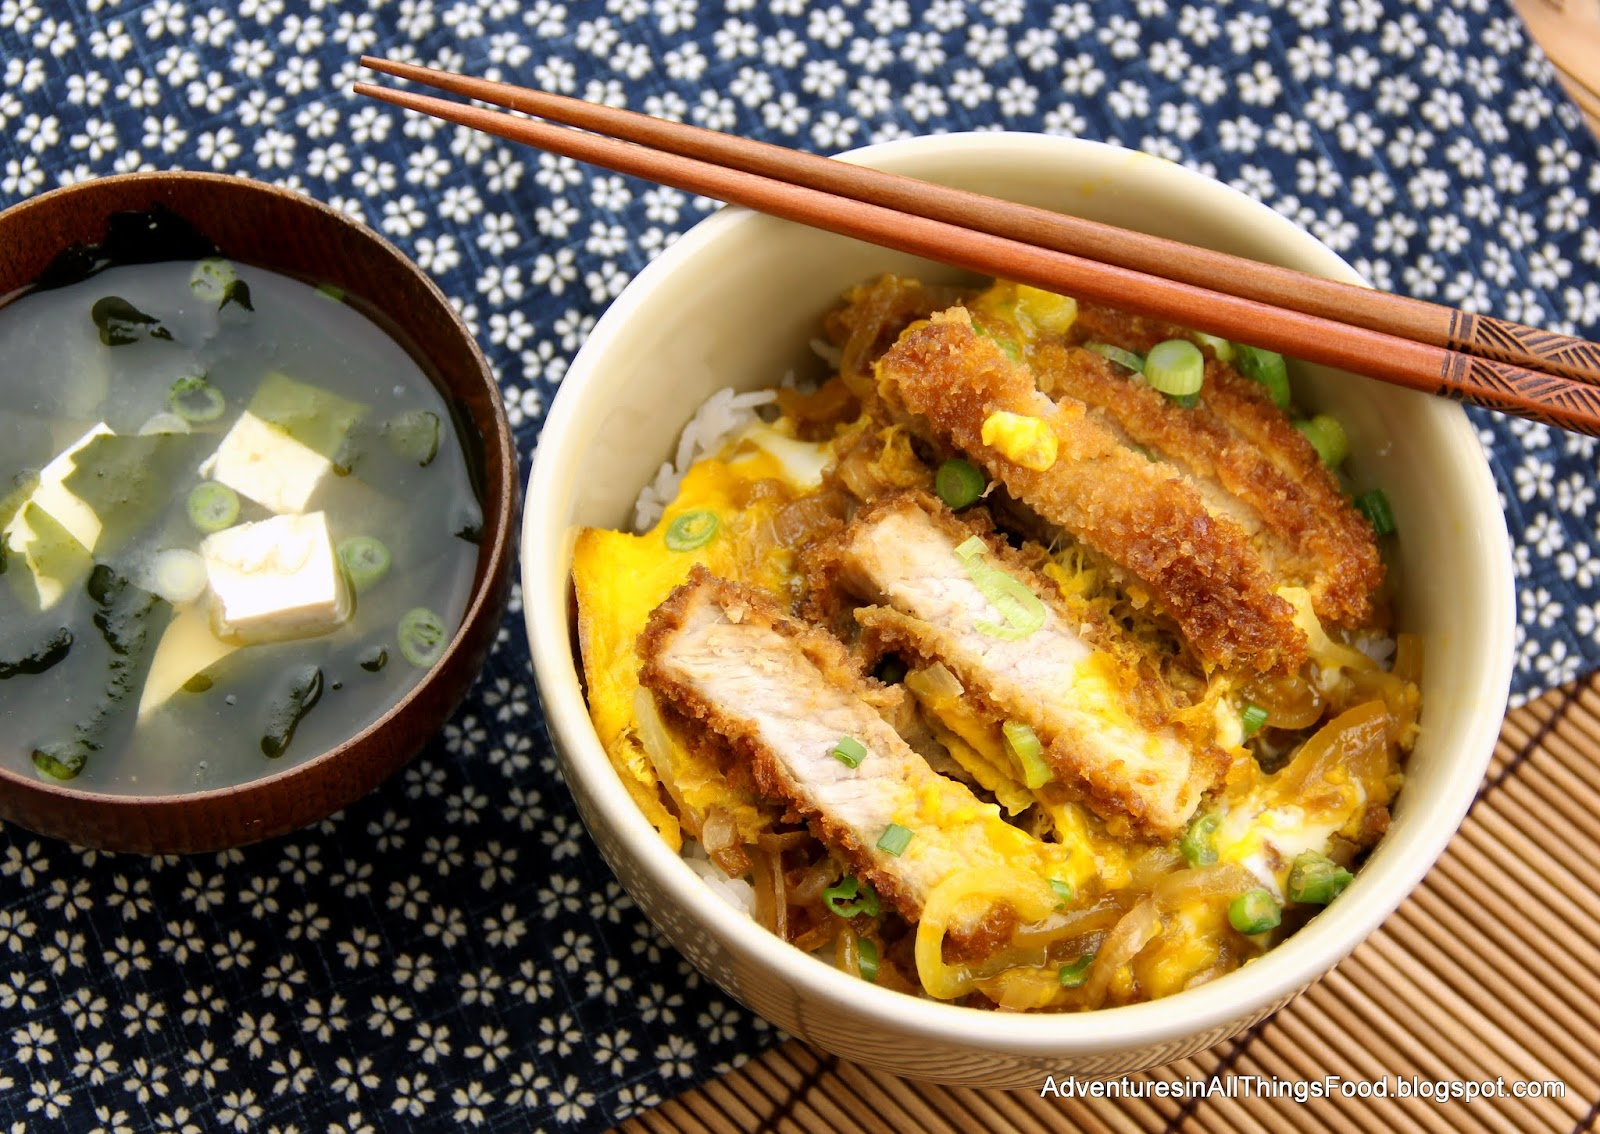 Adventures in all things food: Katsudon (Fried Pork cutlet ...